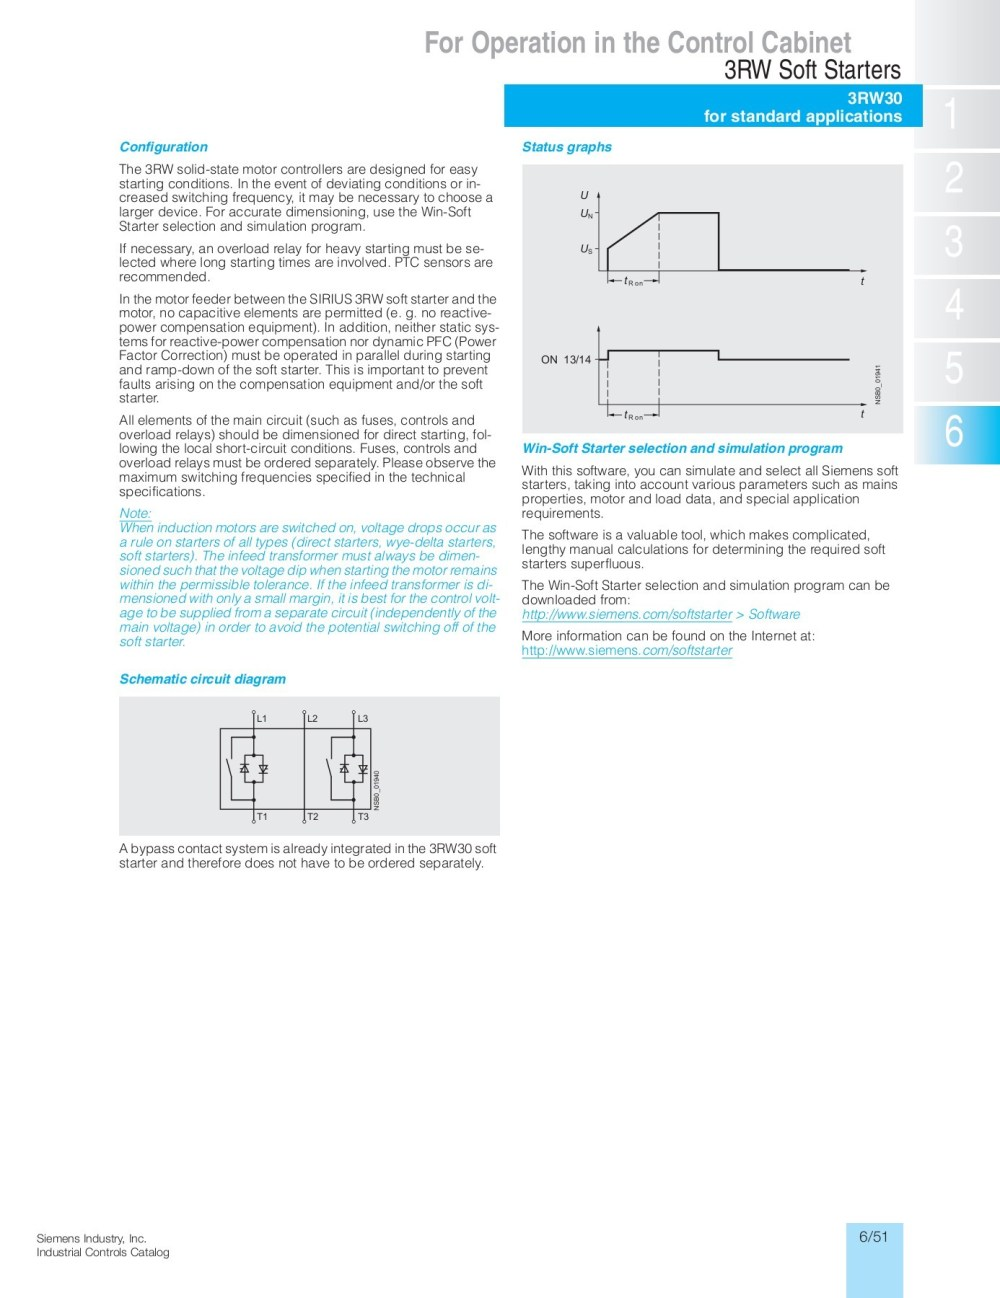 medium resolution of motor starters soft starters and load feeders pages 51 100 text version fliphtml5